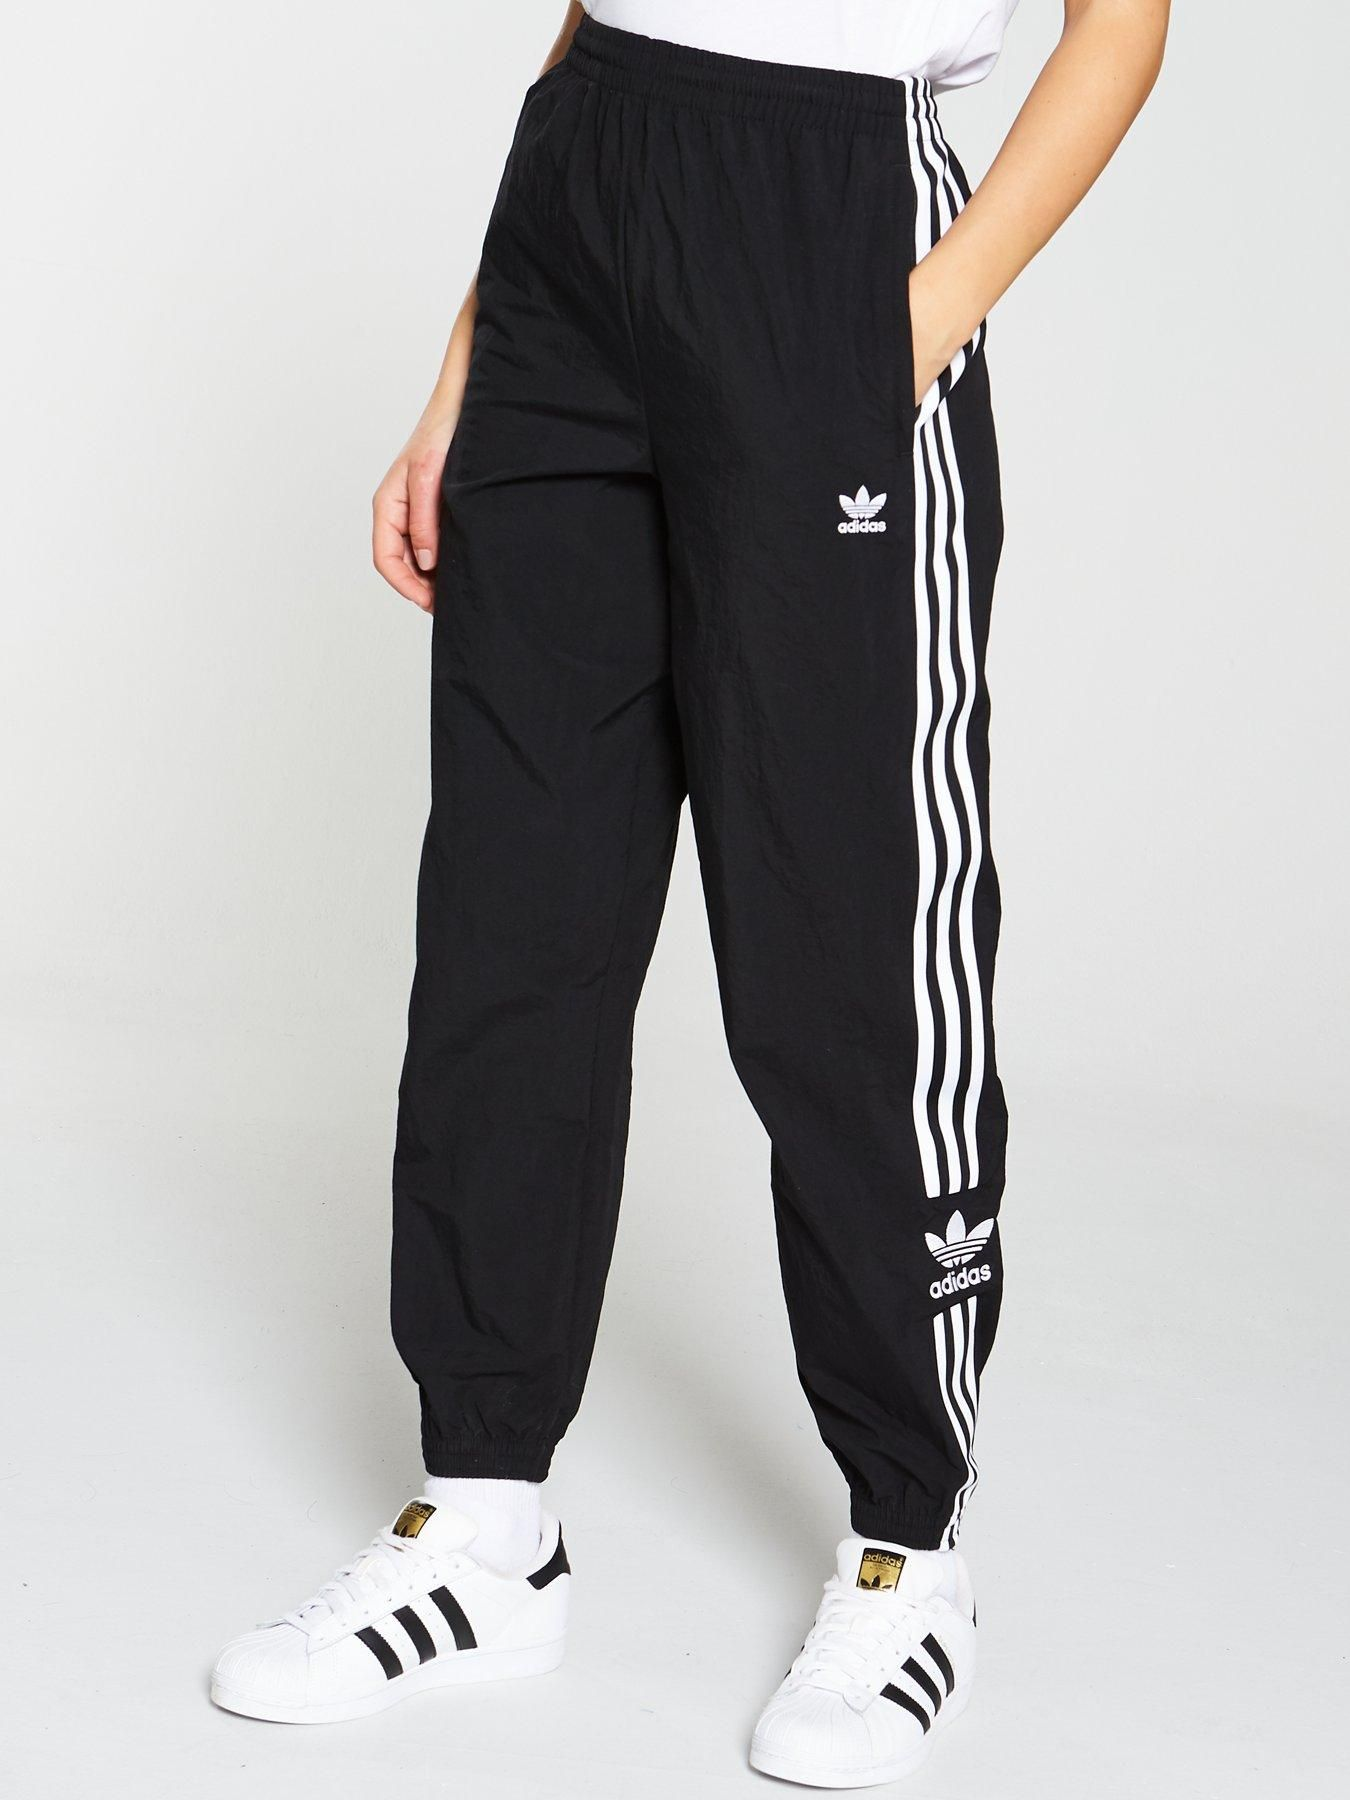 Adidas Originals Lock Up Track Pant Black in 2020 | Adidas